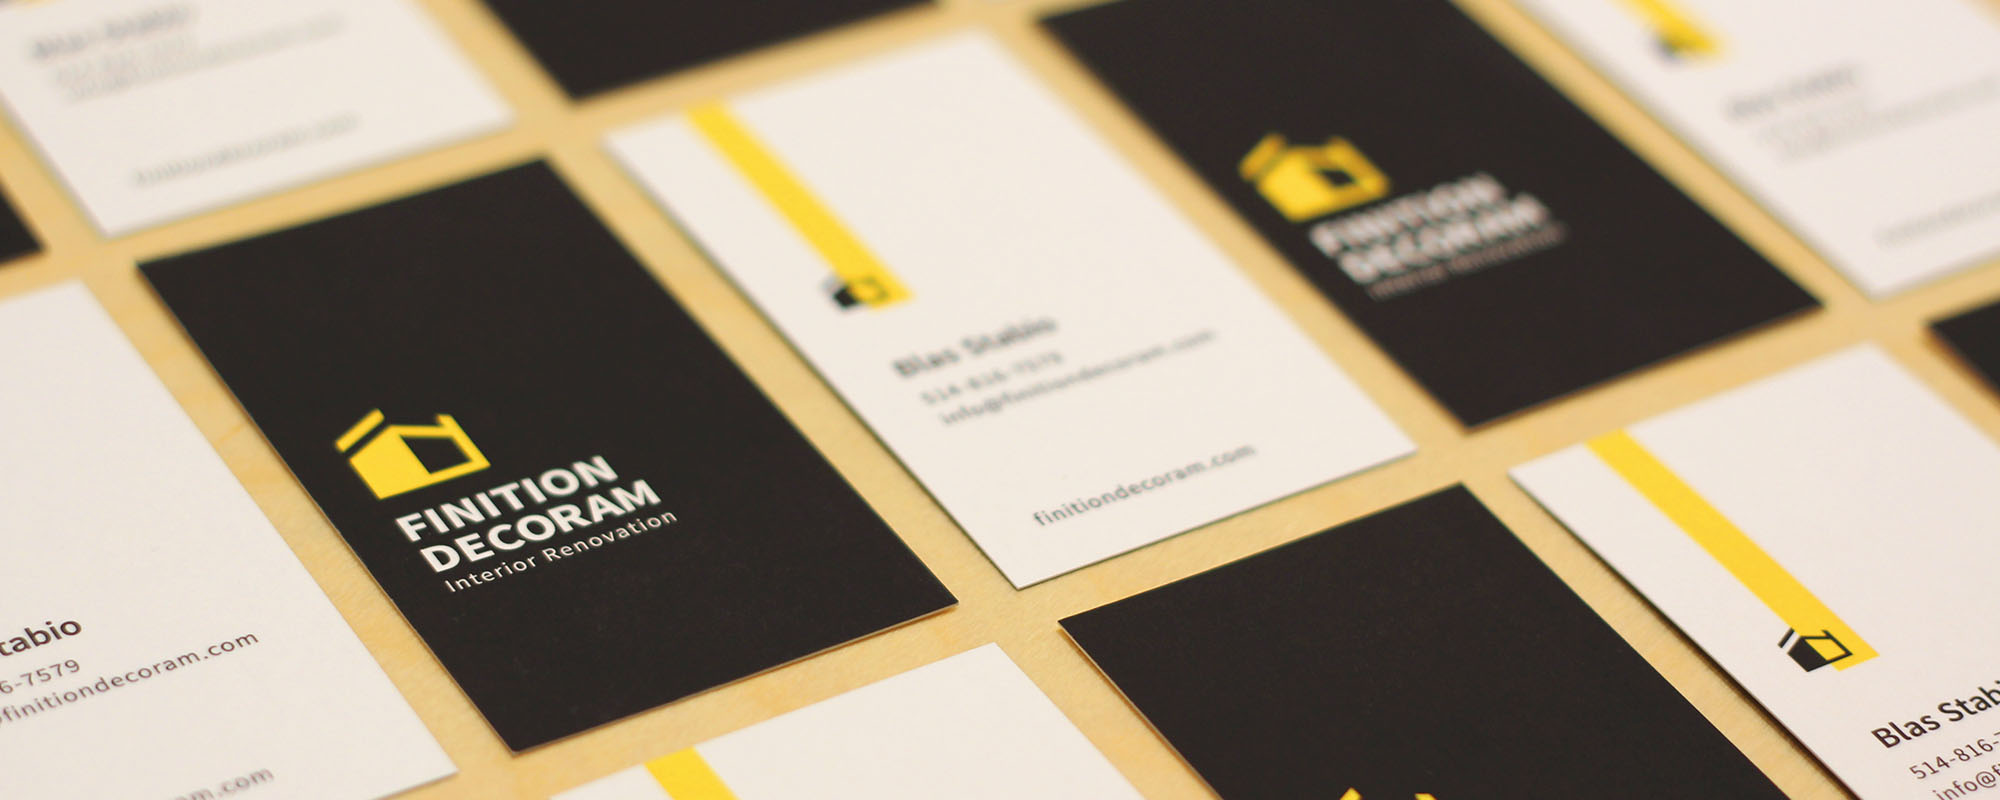 construction company Montreal business card design and print and full rebrand with new logo and website